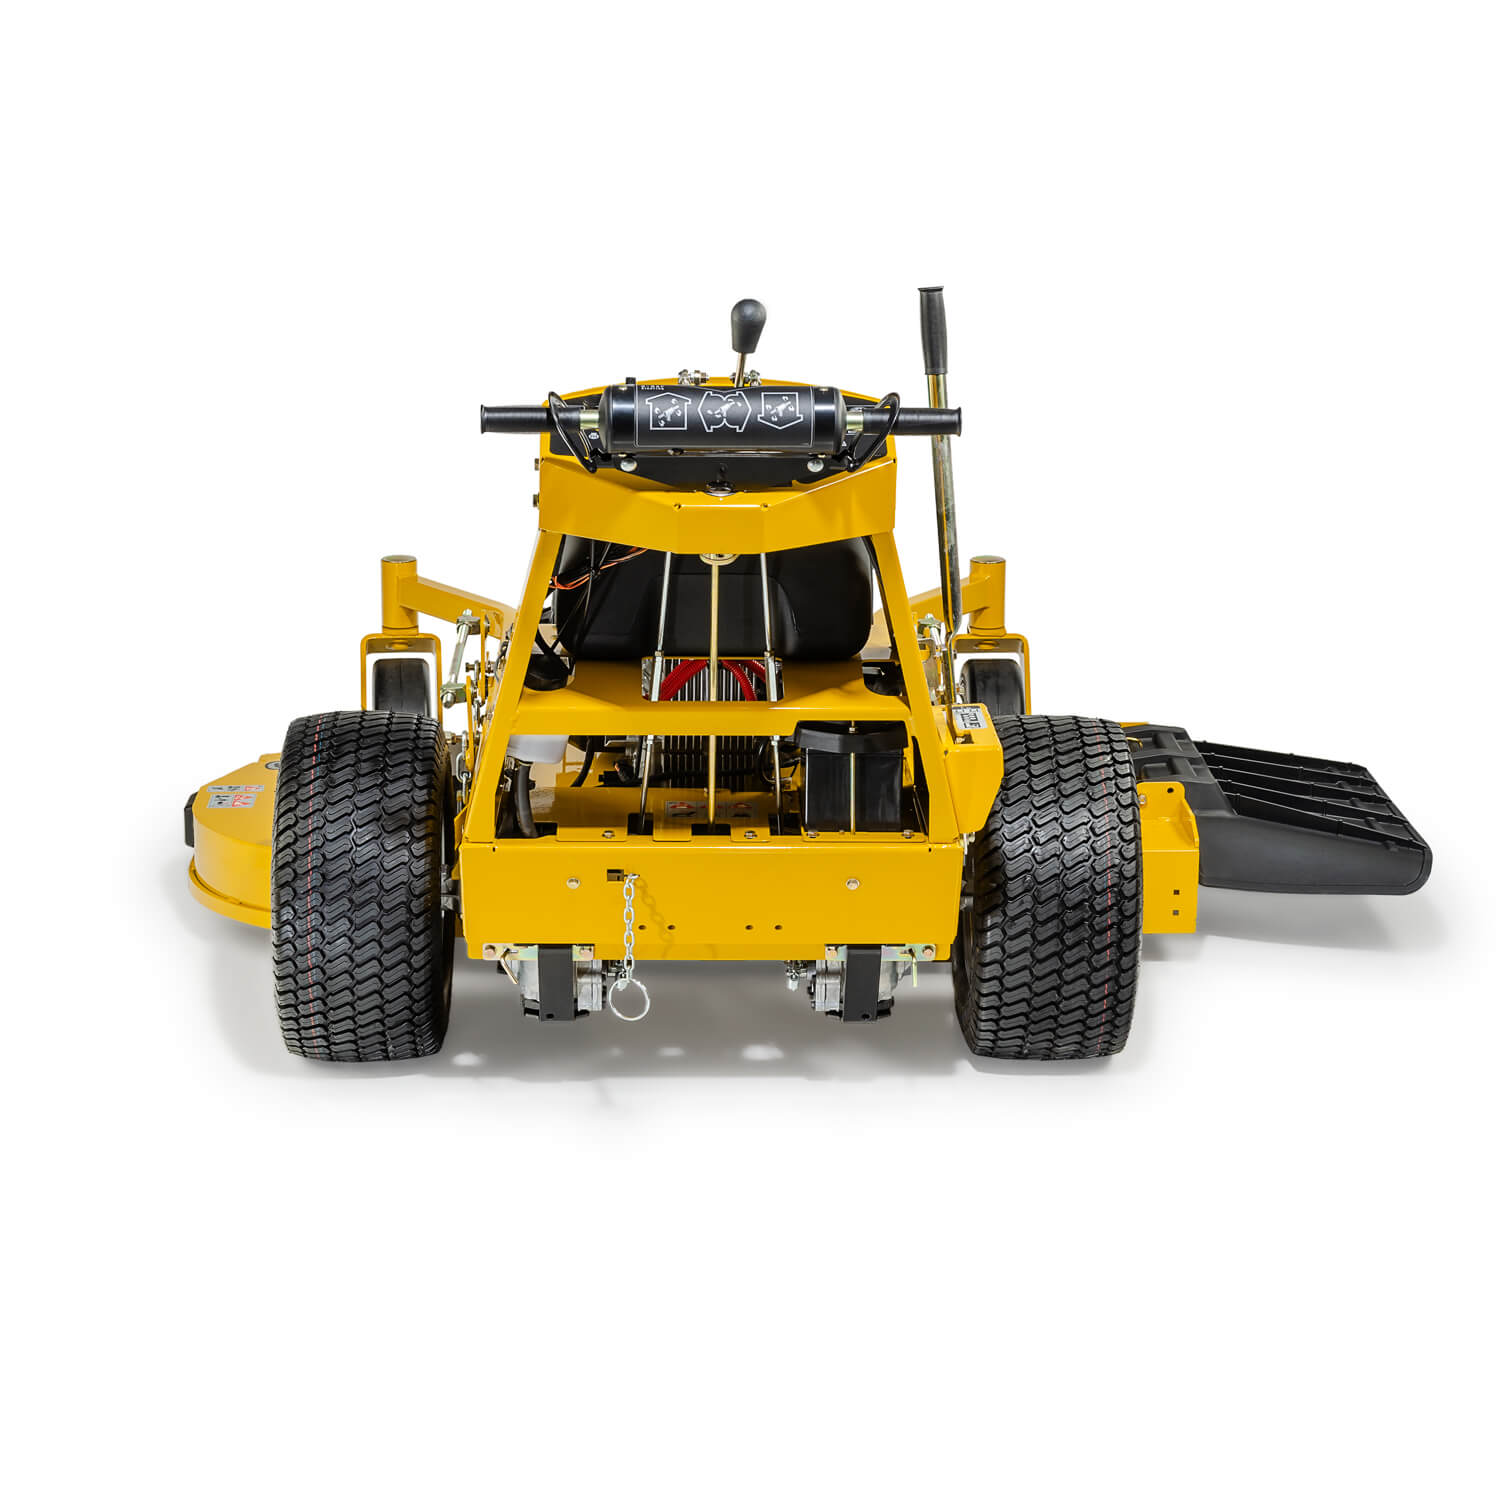 Image of the rear of a yellow walk-behind mower